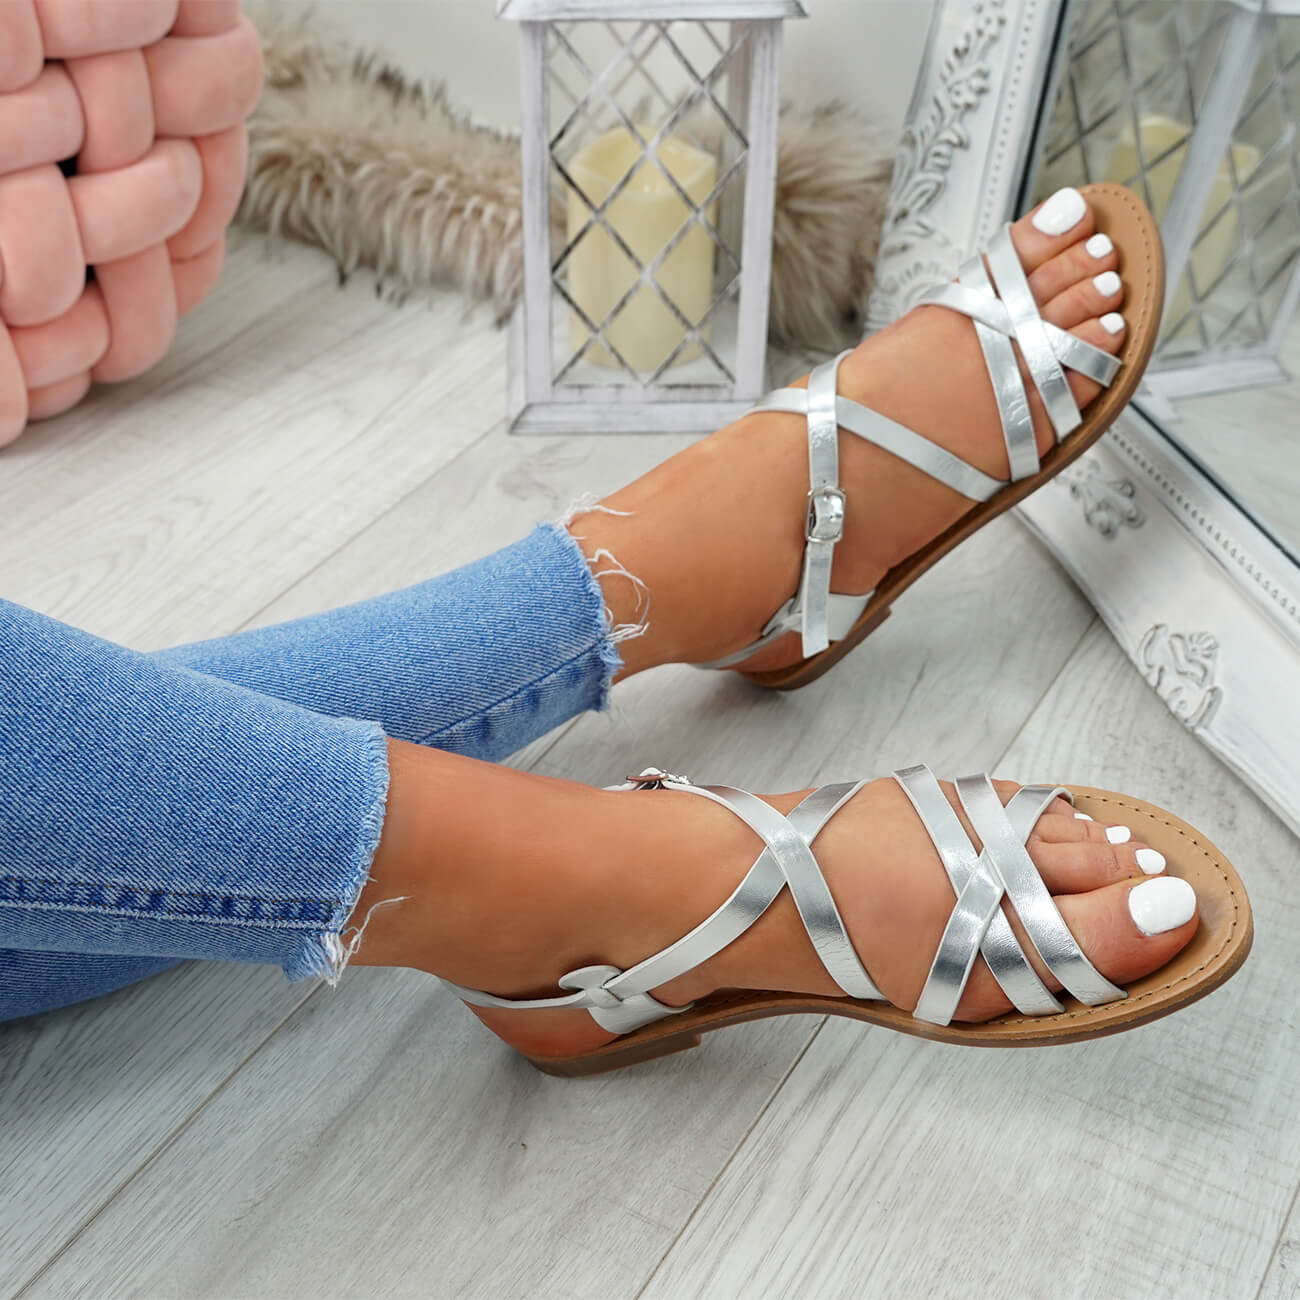 WOMENS-LADIES-ANKLE-STRAP-PEEP-TOE-BUCKLE-FLAT-SANDALS-SUMMER-CASUAL-SHOES thumbnail 24